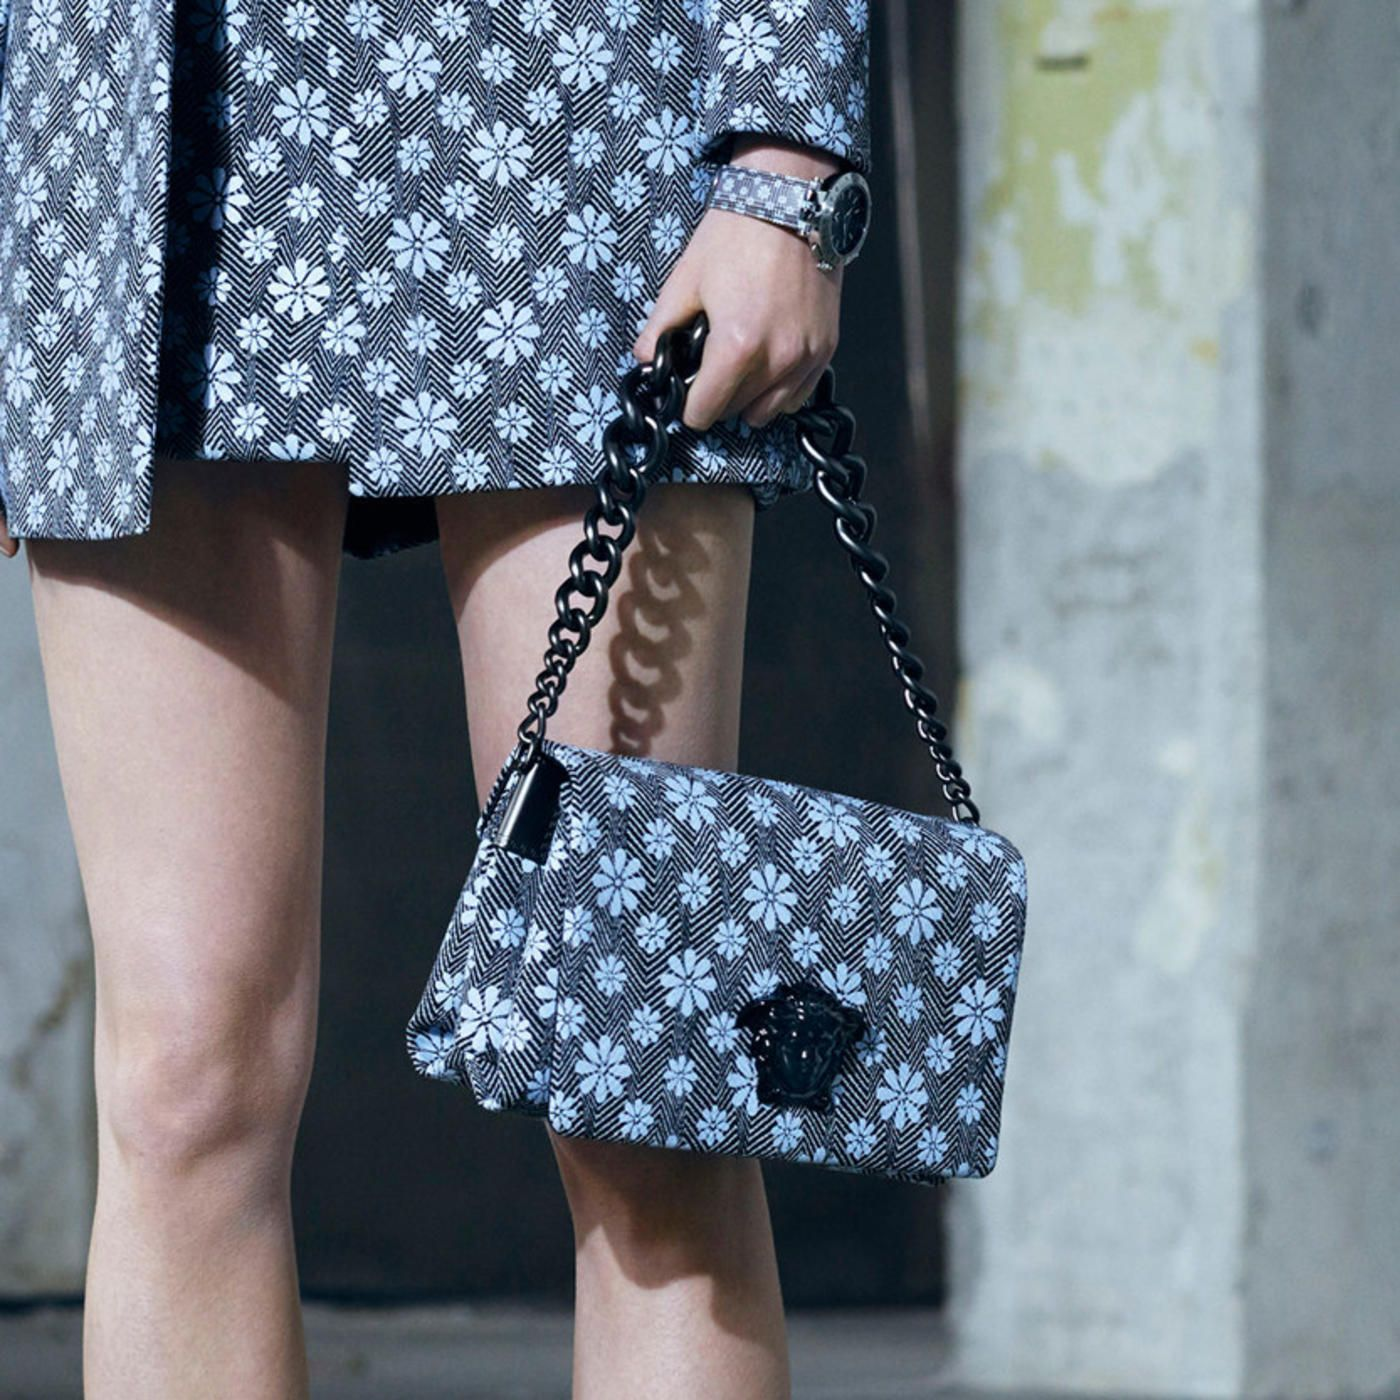 A bag from the Versace pre-fall 2016 collection. Photo: Versace.